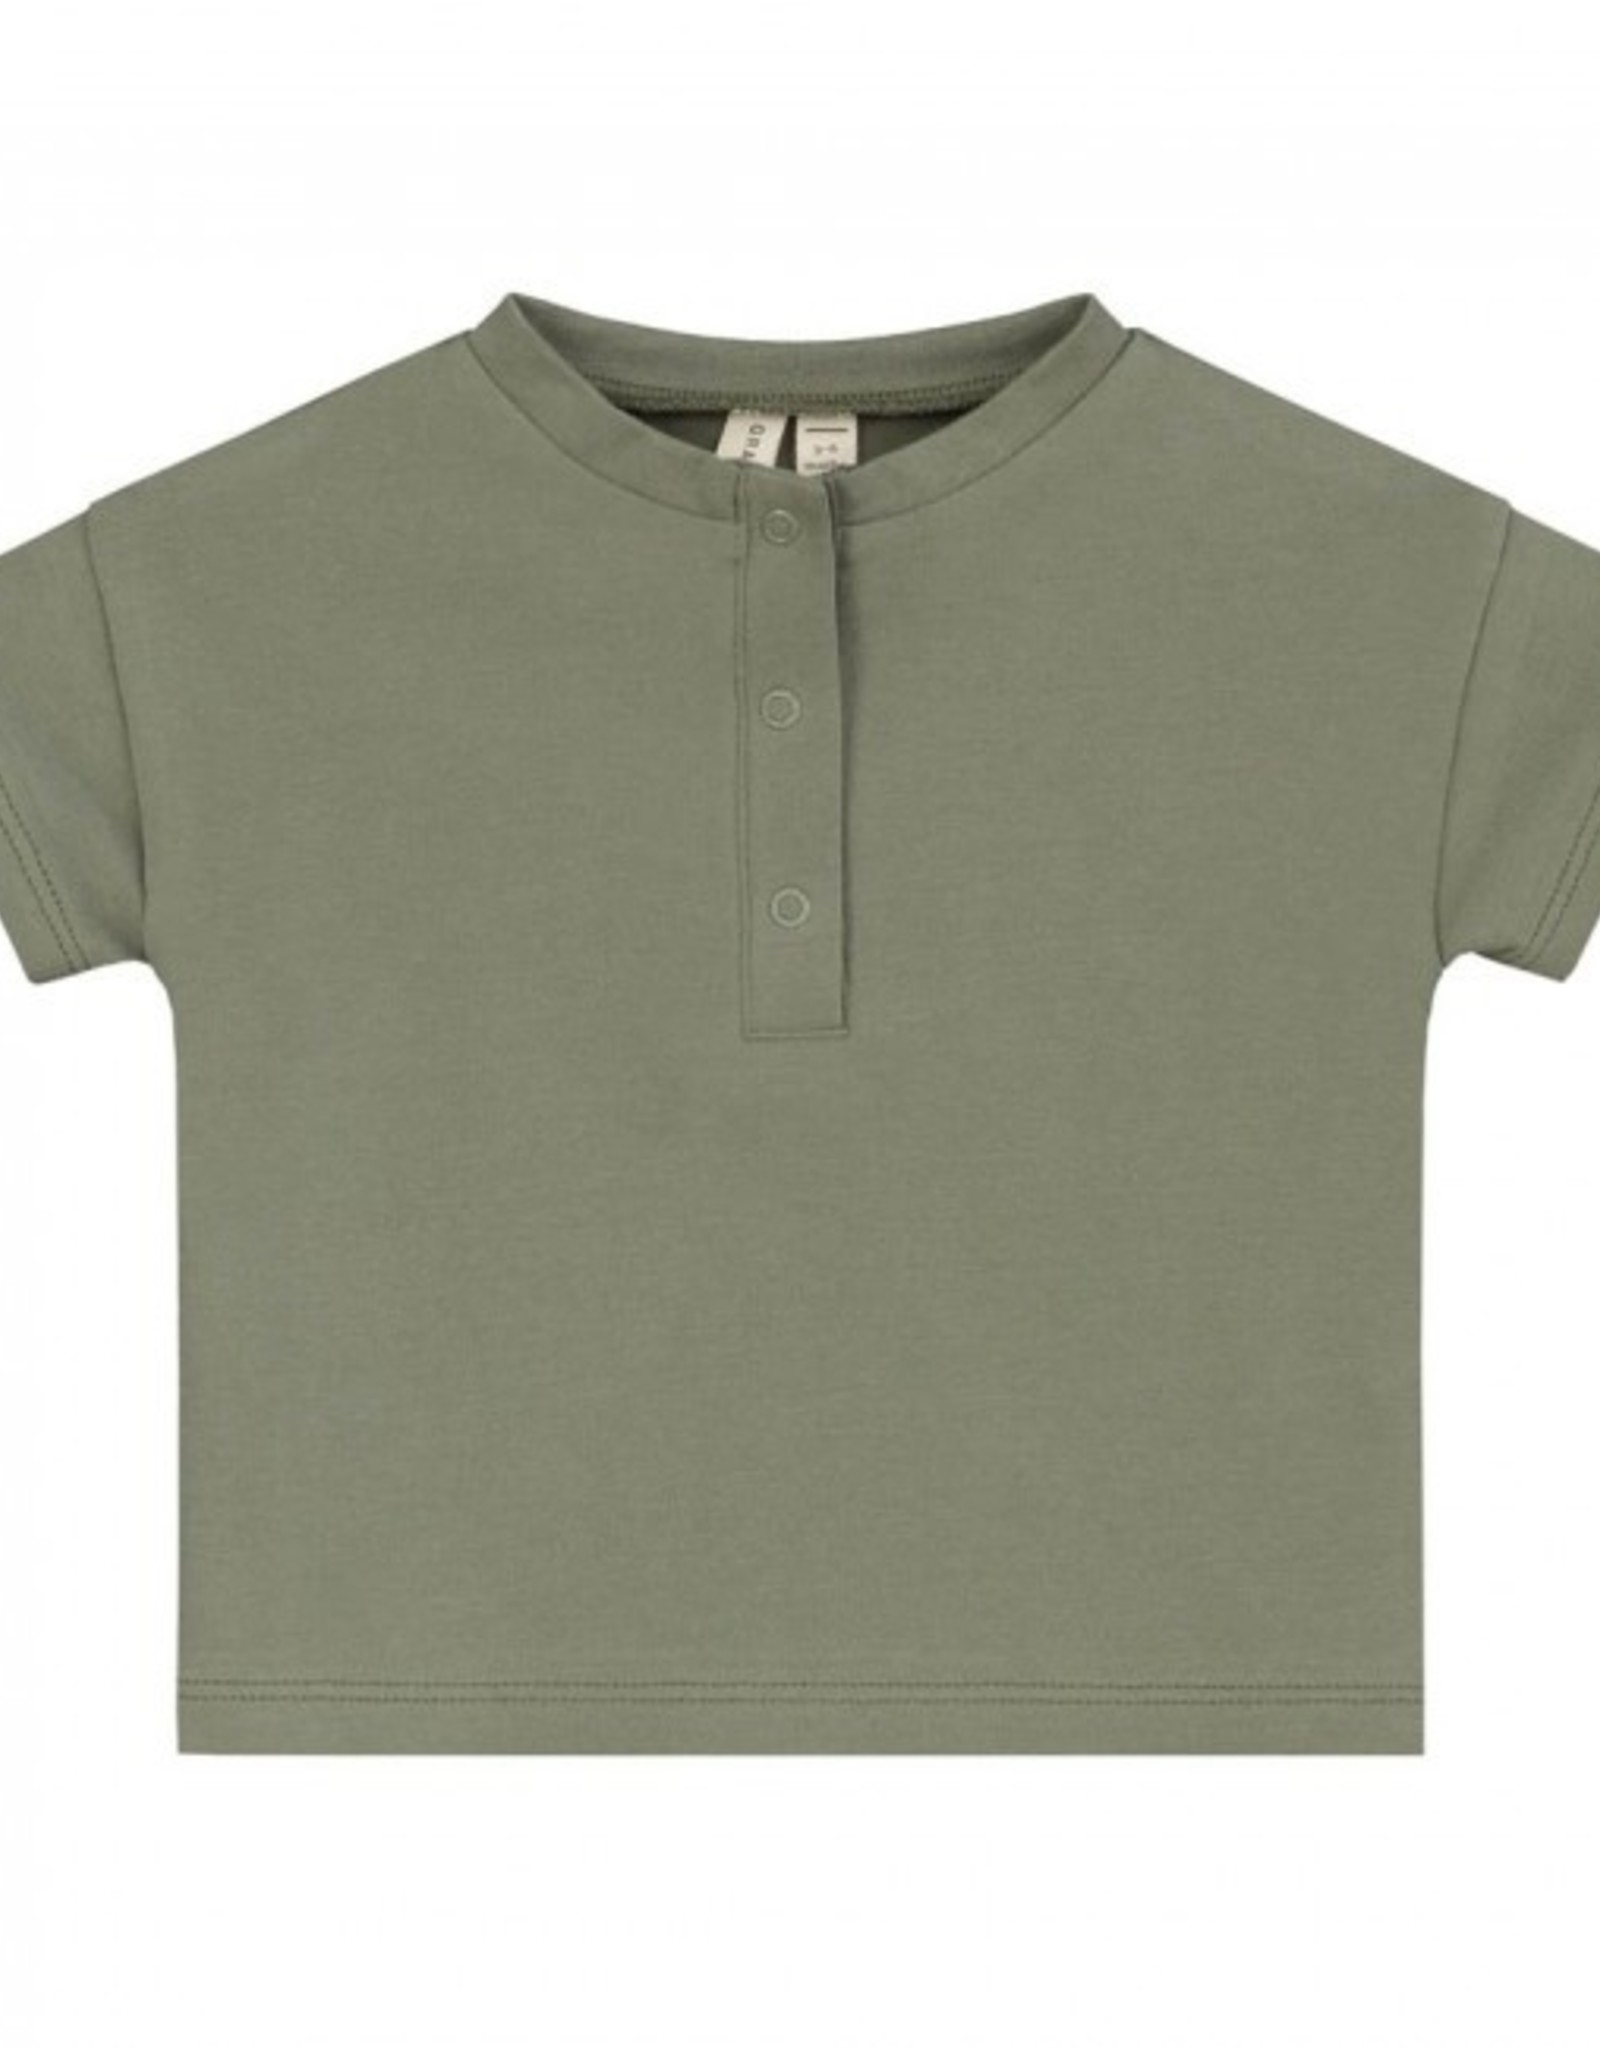 Gray Label Baby Henley Tee